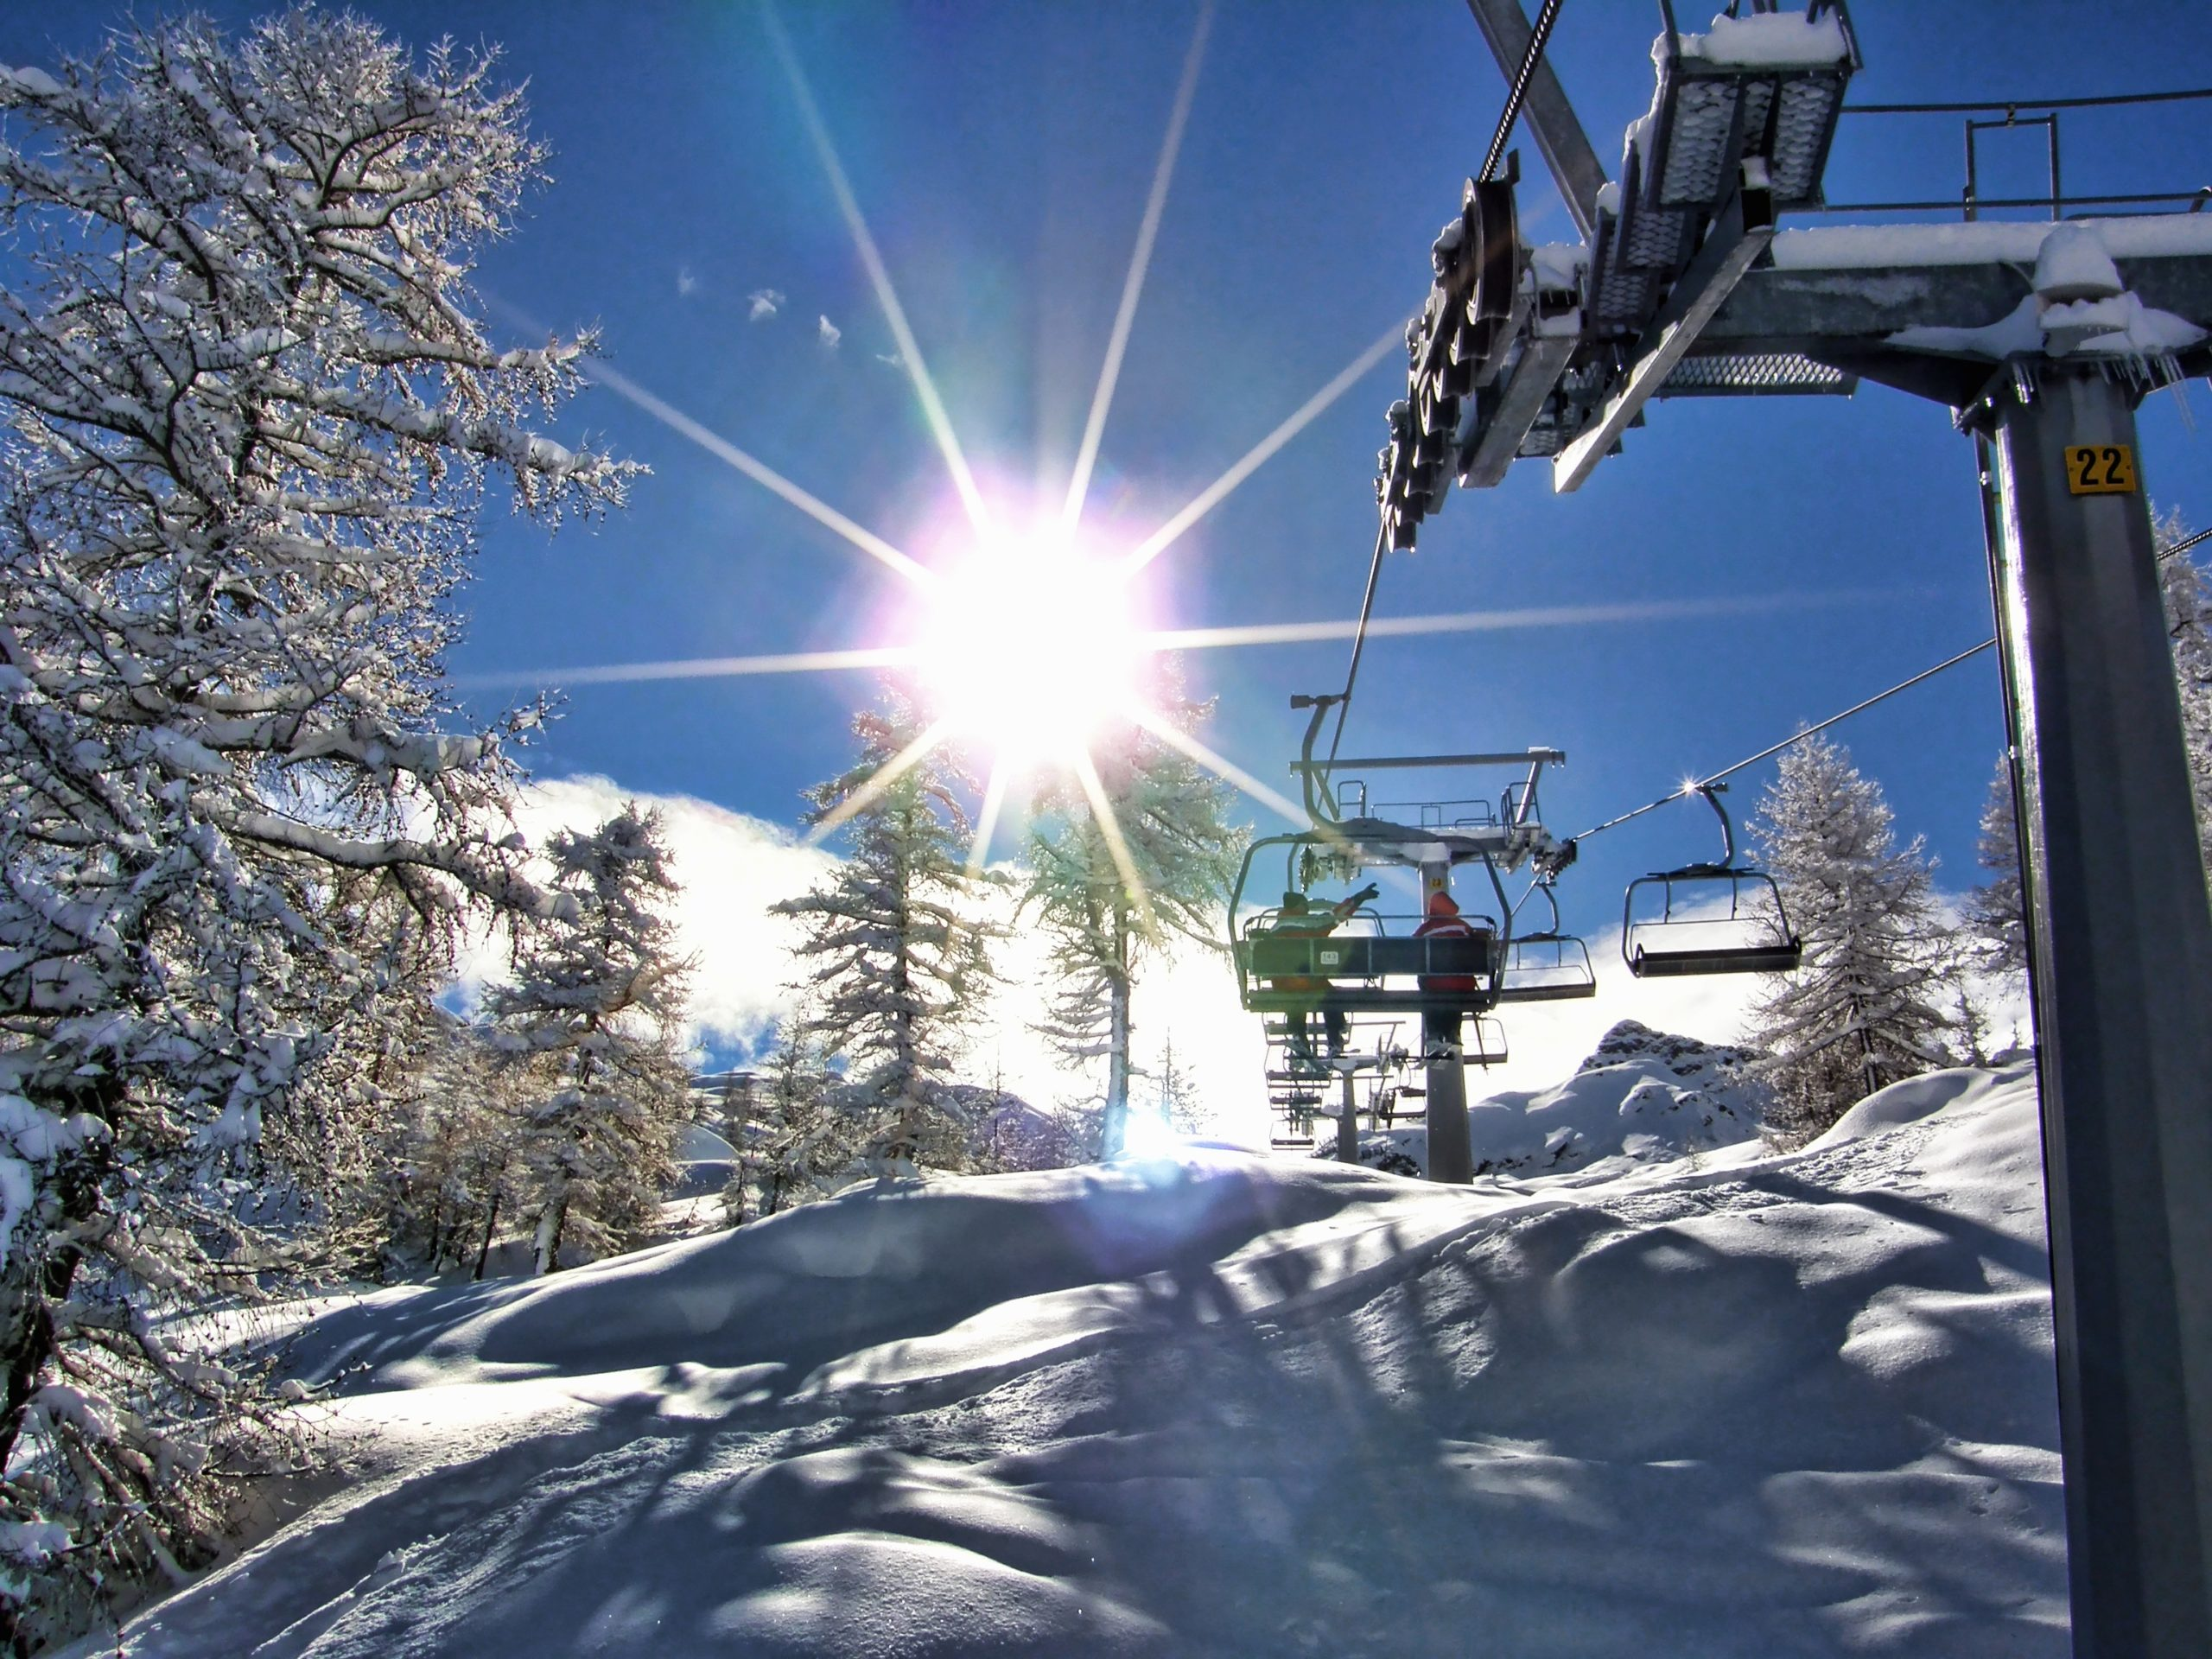 Ski life during winter with sun shining through brilliant blue sky